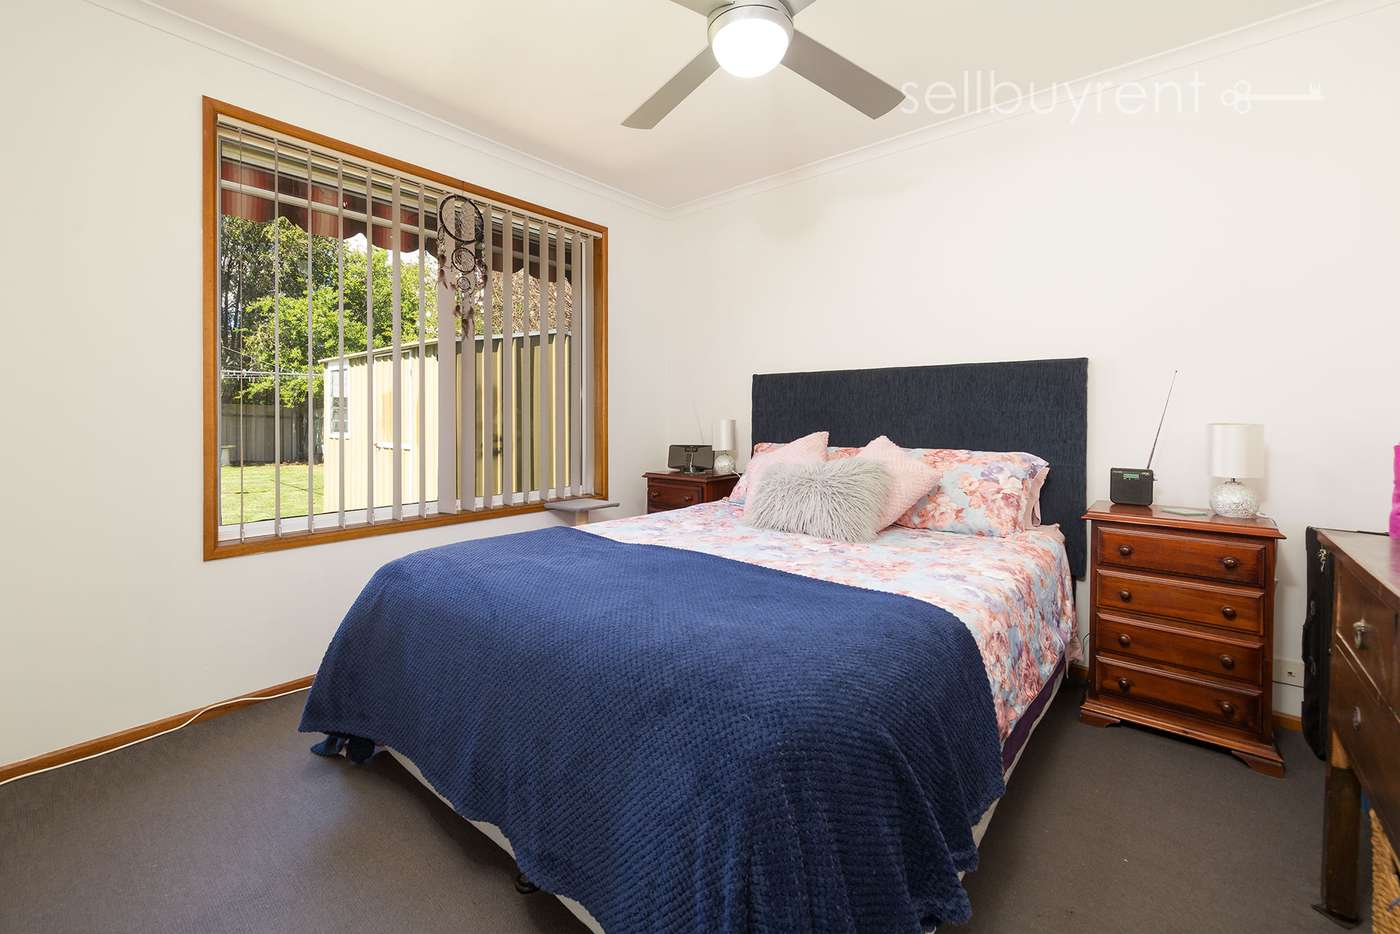 Fifth view of Homely house listing, 17 MCFARLAND ROAD, Wodonga VIC 3690